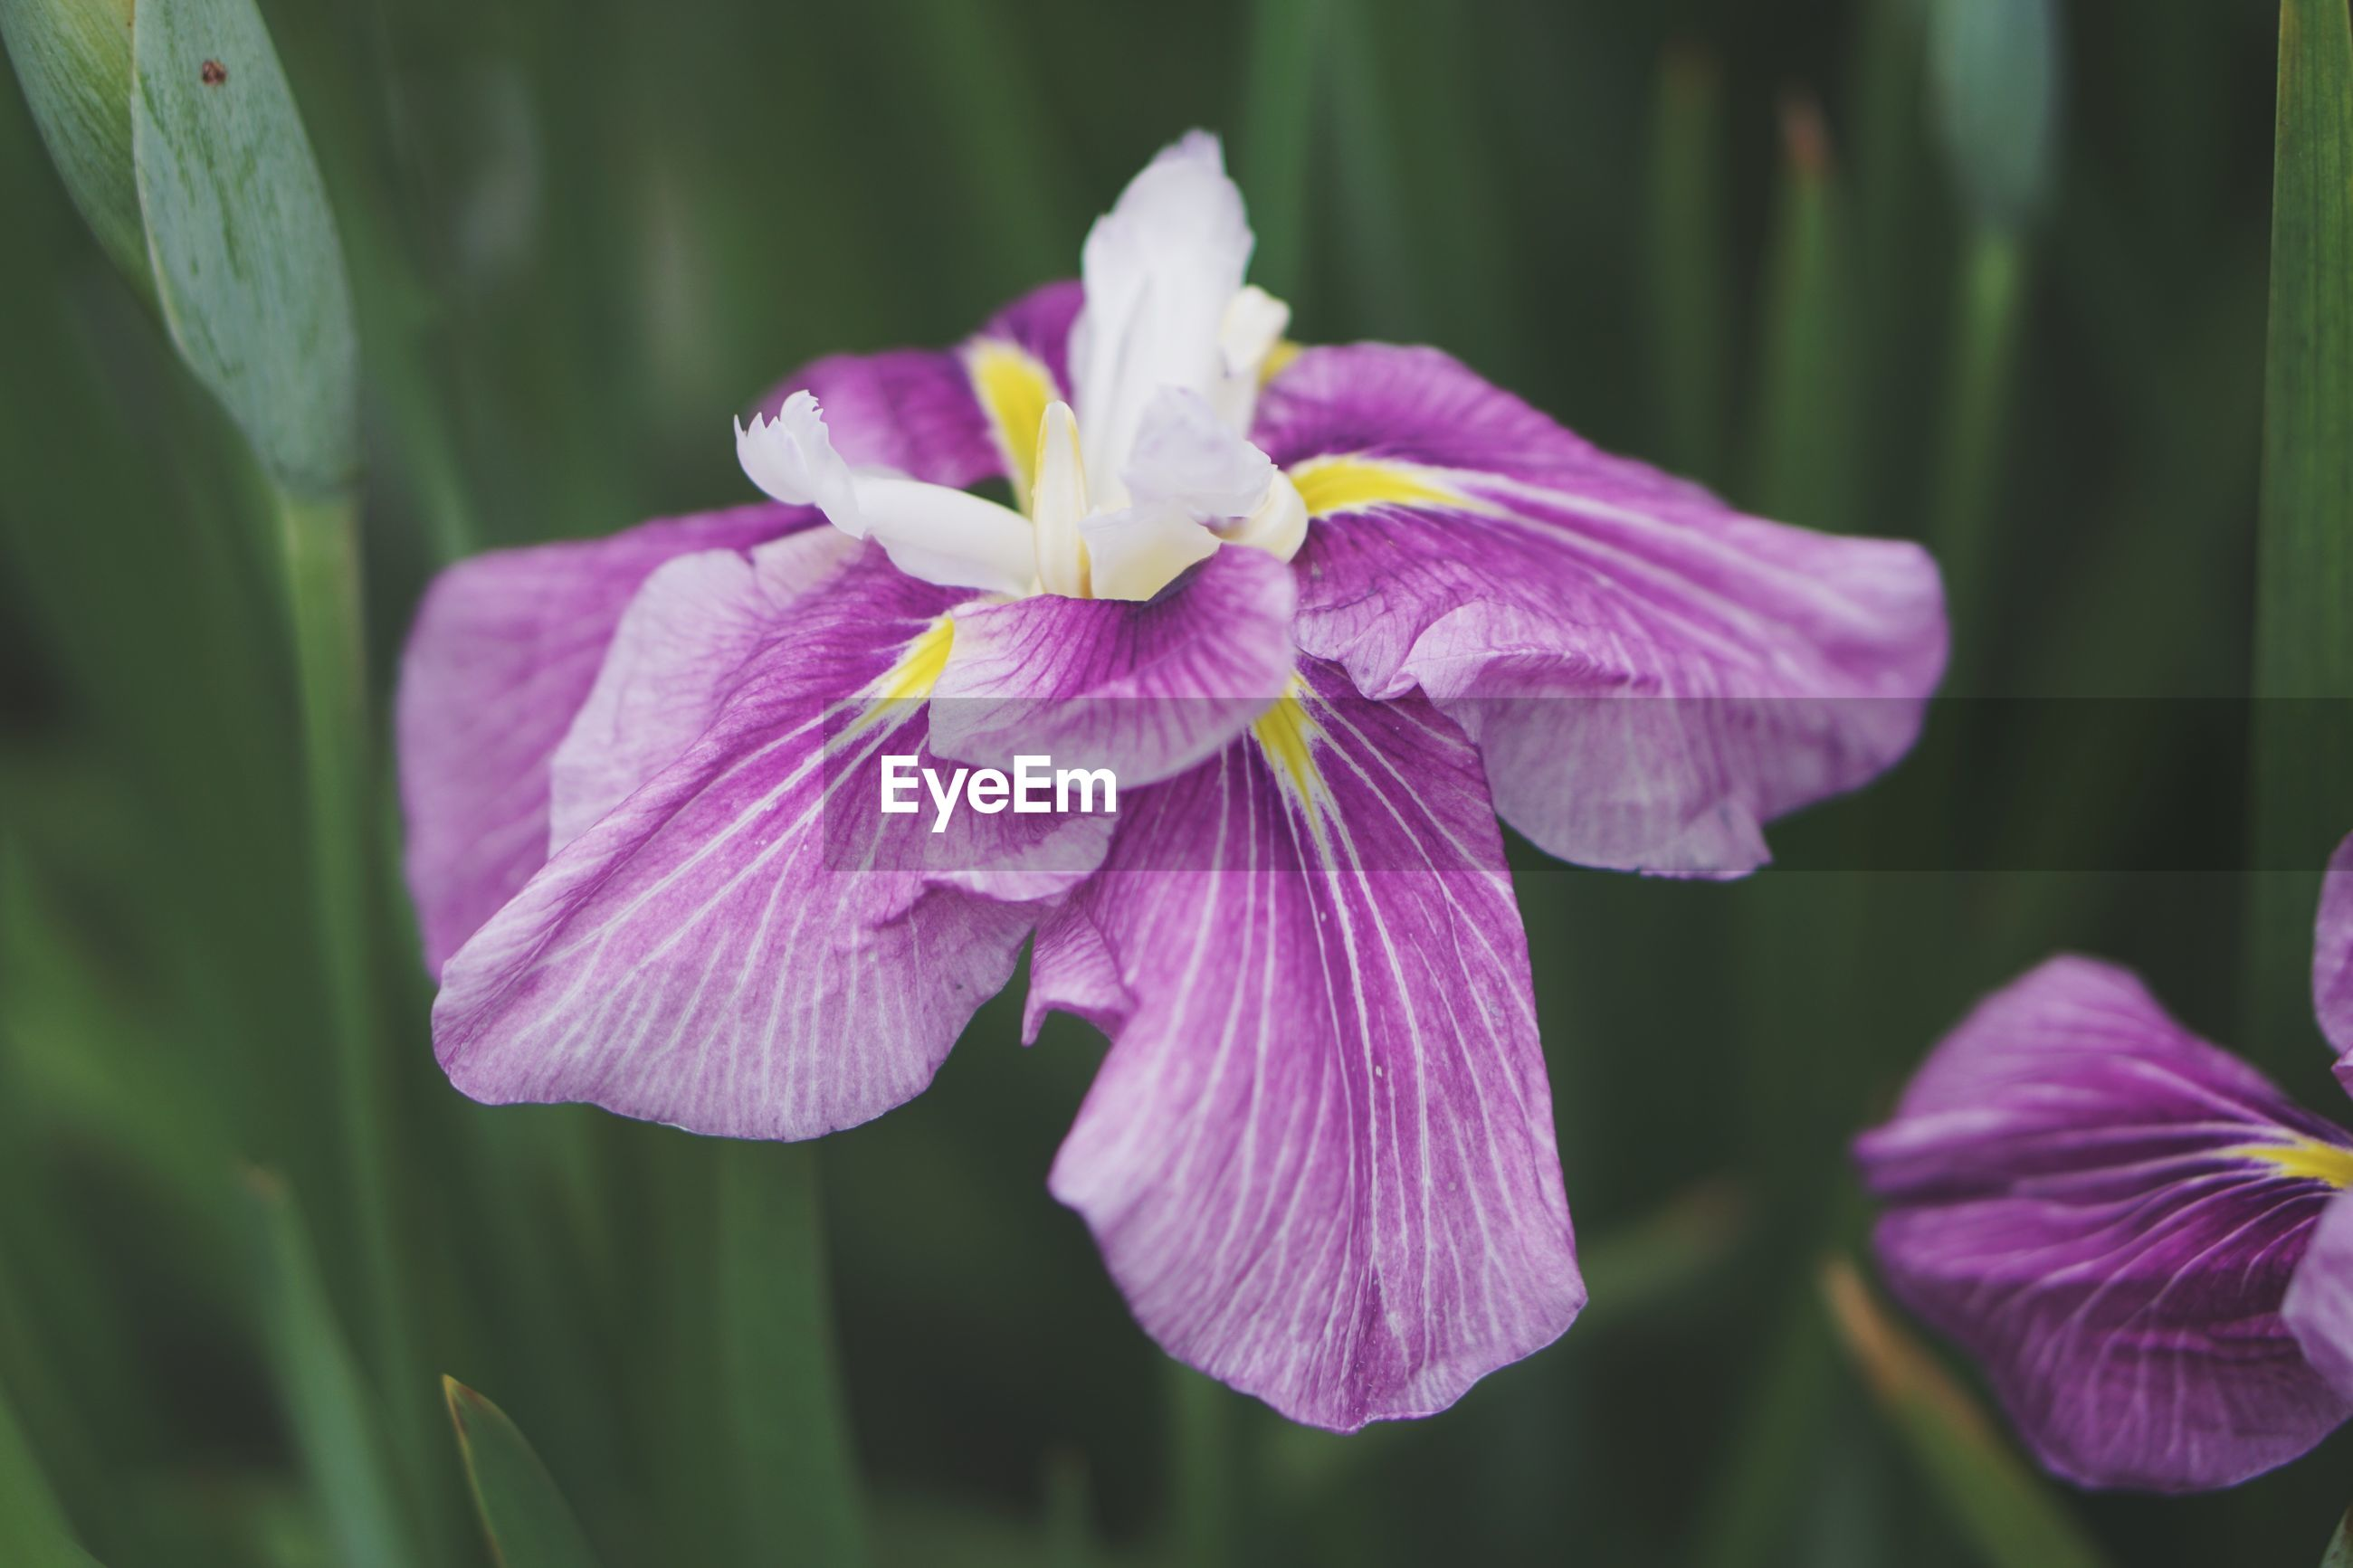 flowering plant, flower, vulnerability, fragility, plant, petal, freshness, beauty in nature, inflorescence, flower head, close-up, growth, purple, no people, nature, focus on foreground, day, outdoors, plant part, iris - plant